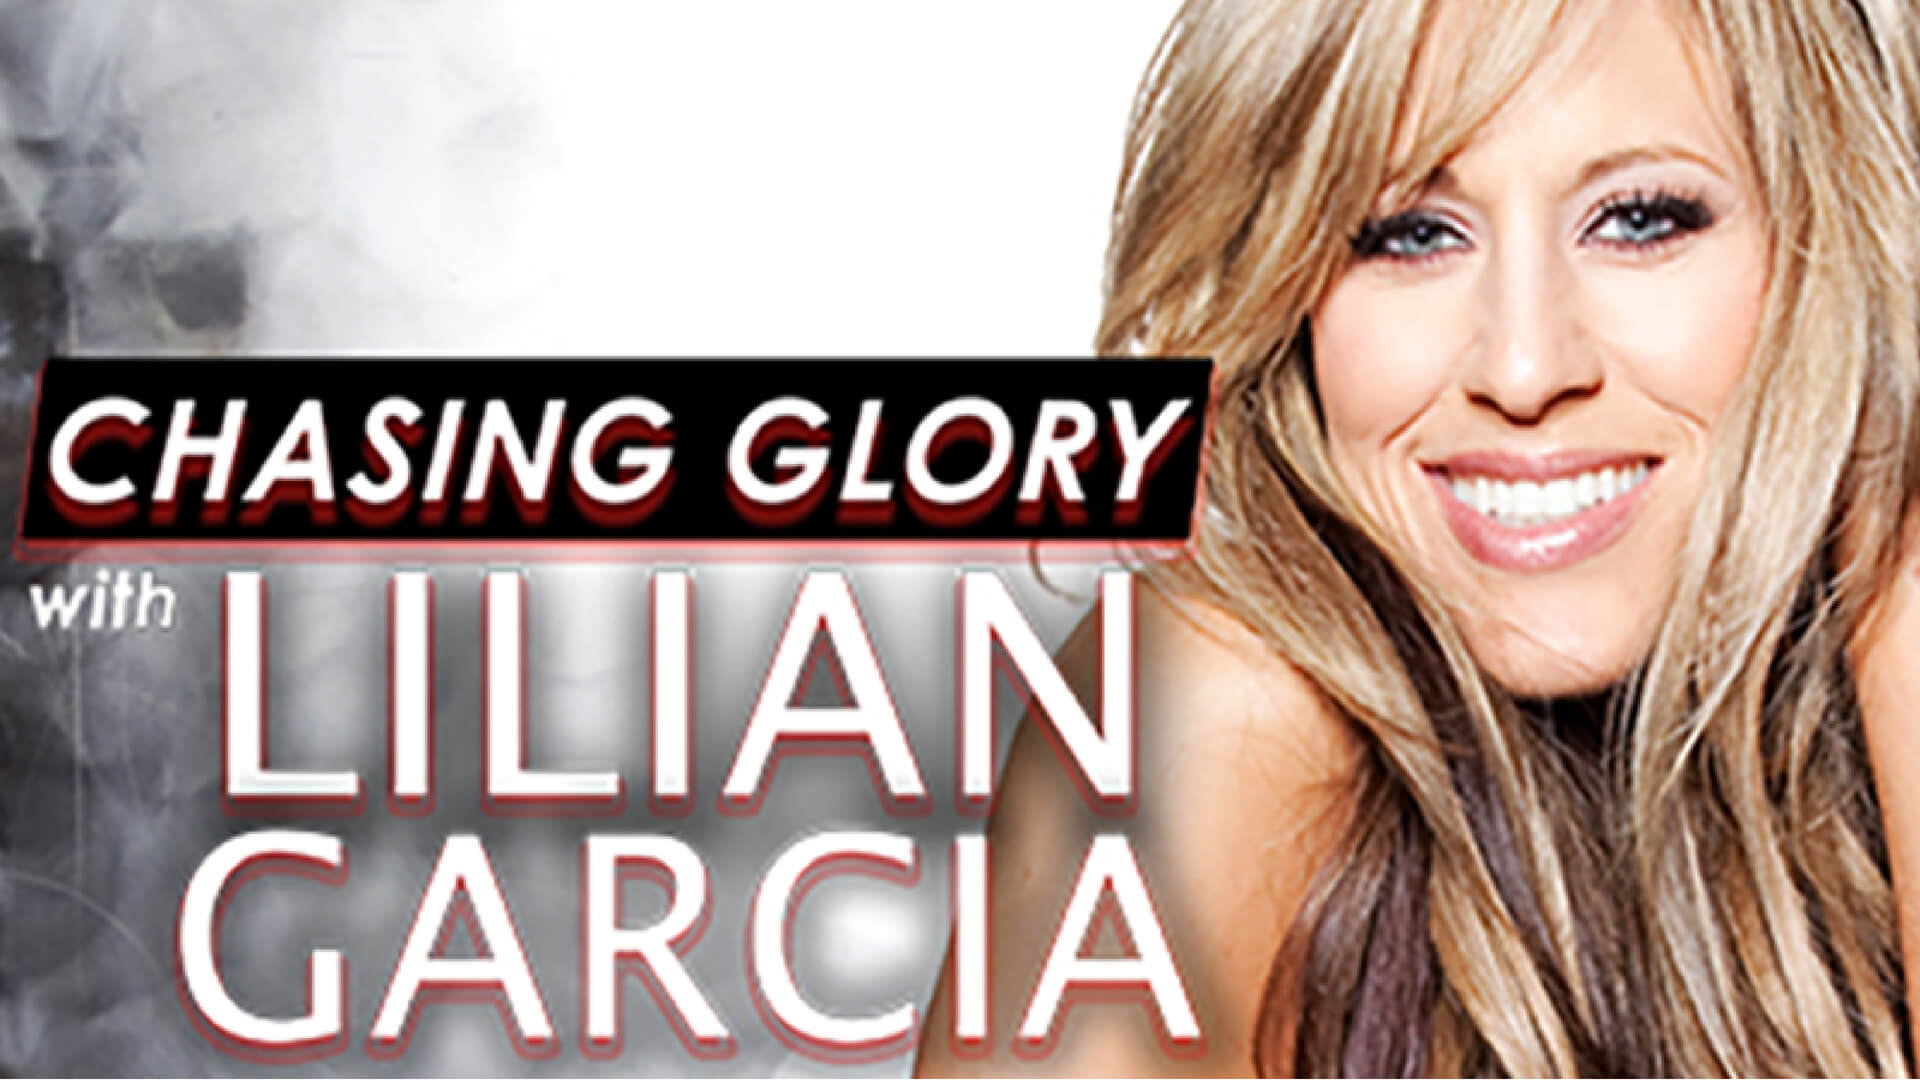 Chasing Glory with Lillian Garcia